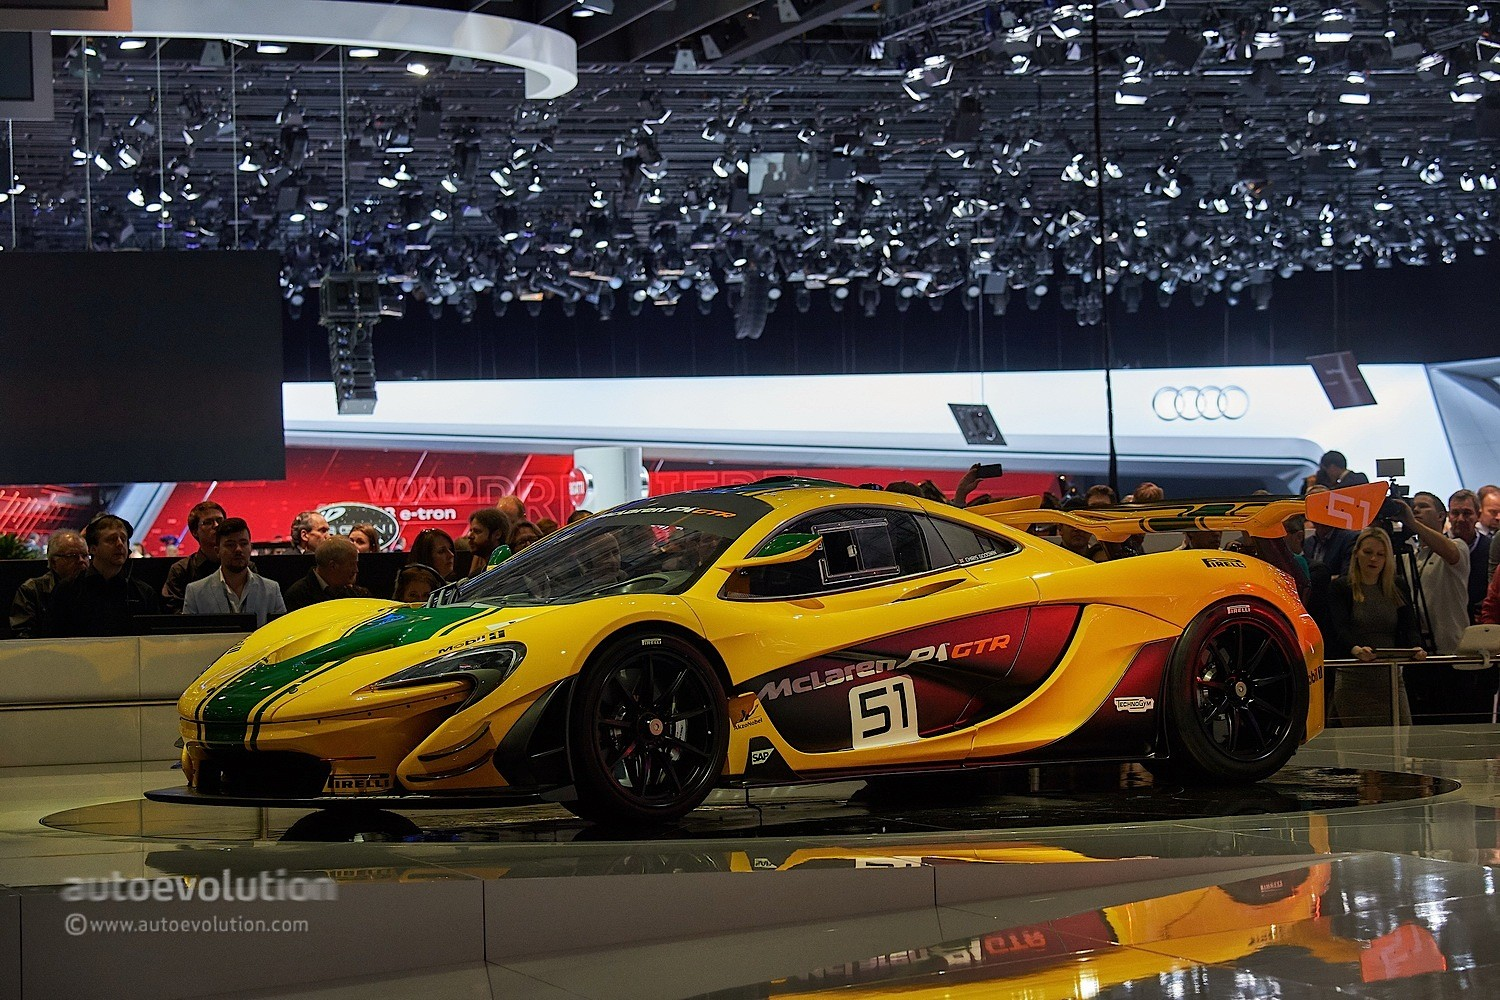 mclaren p1 gtr race car debuts at the geneva motor show. Black Bedroom Furniture Sets. Home Design Ideas